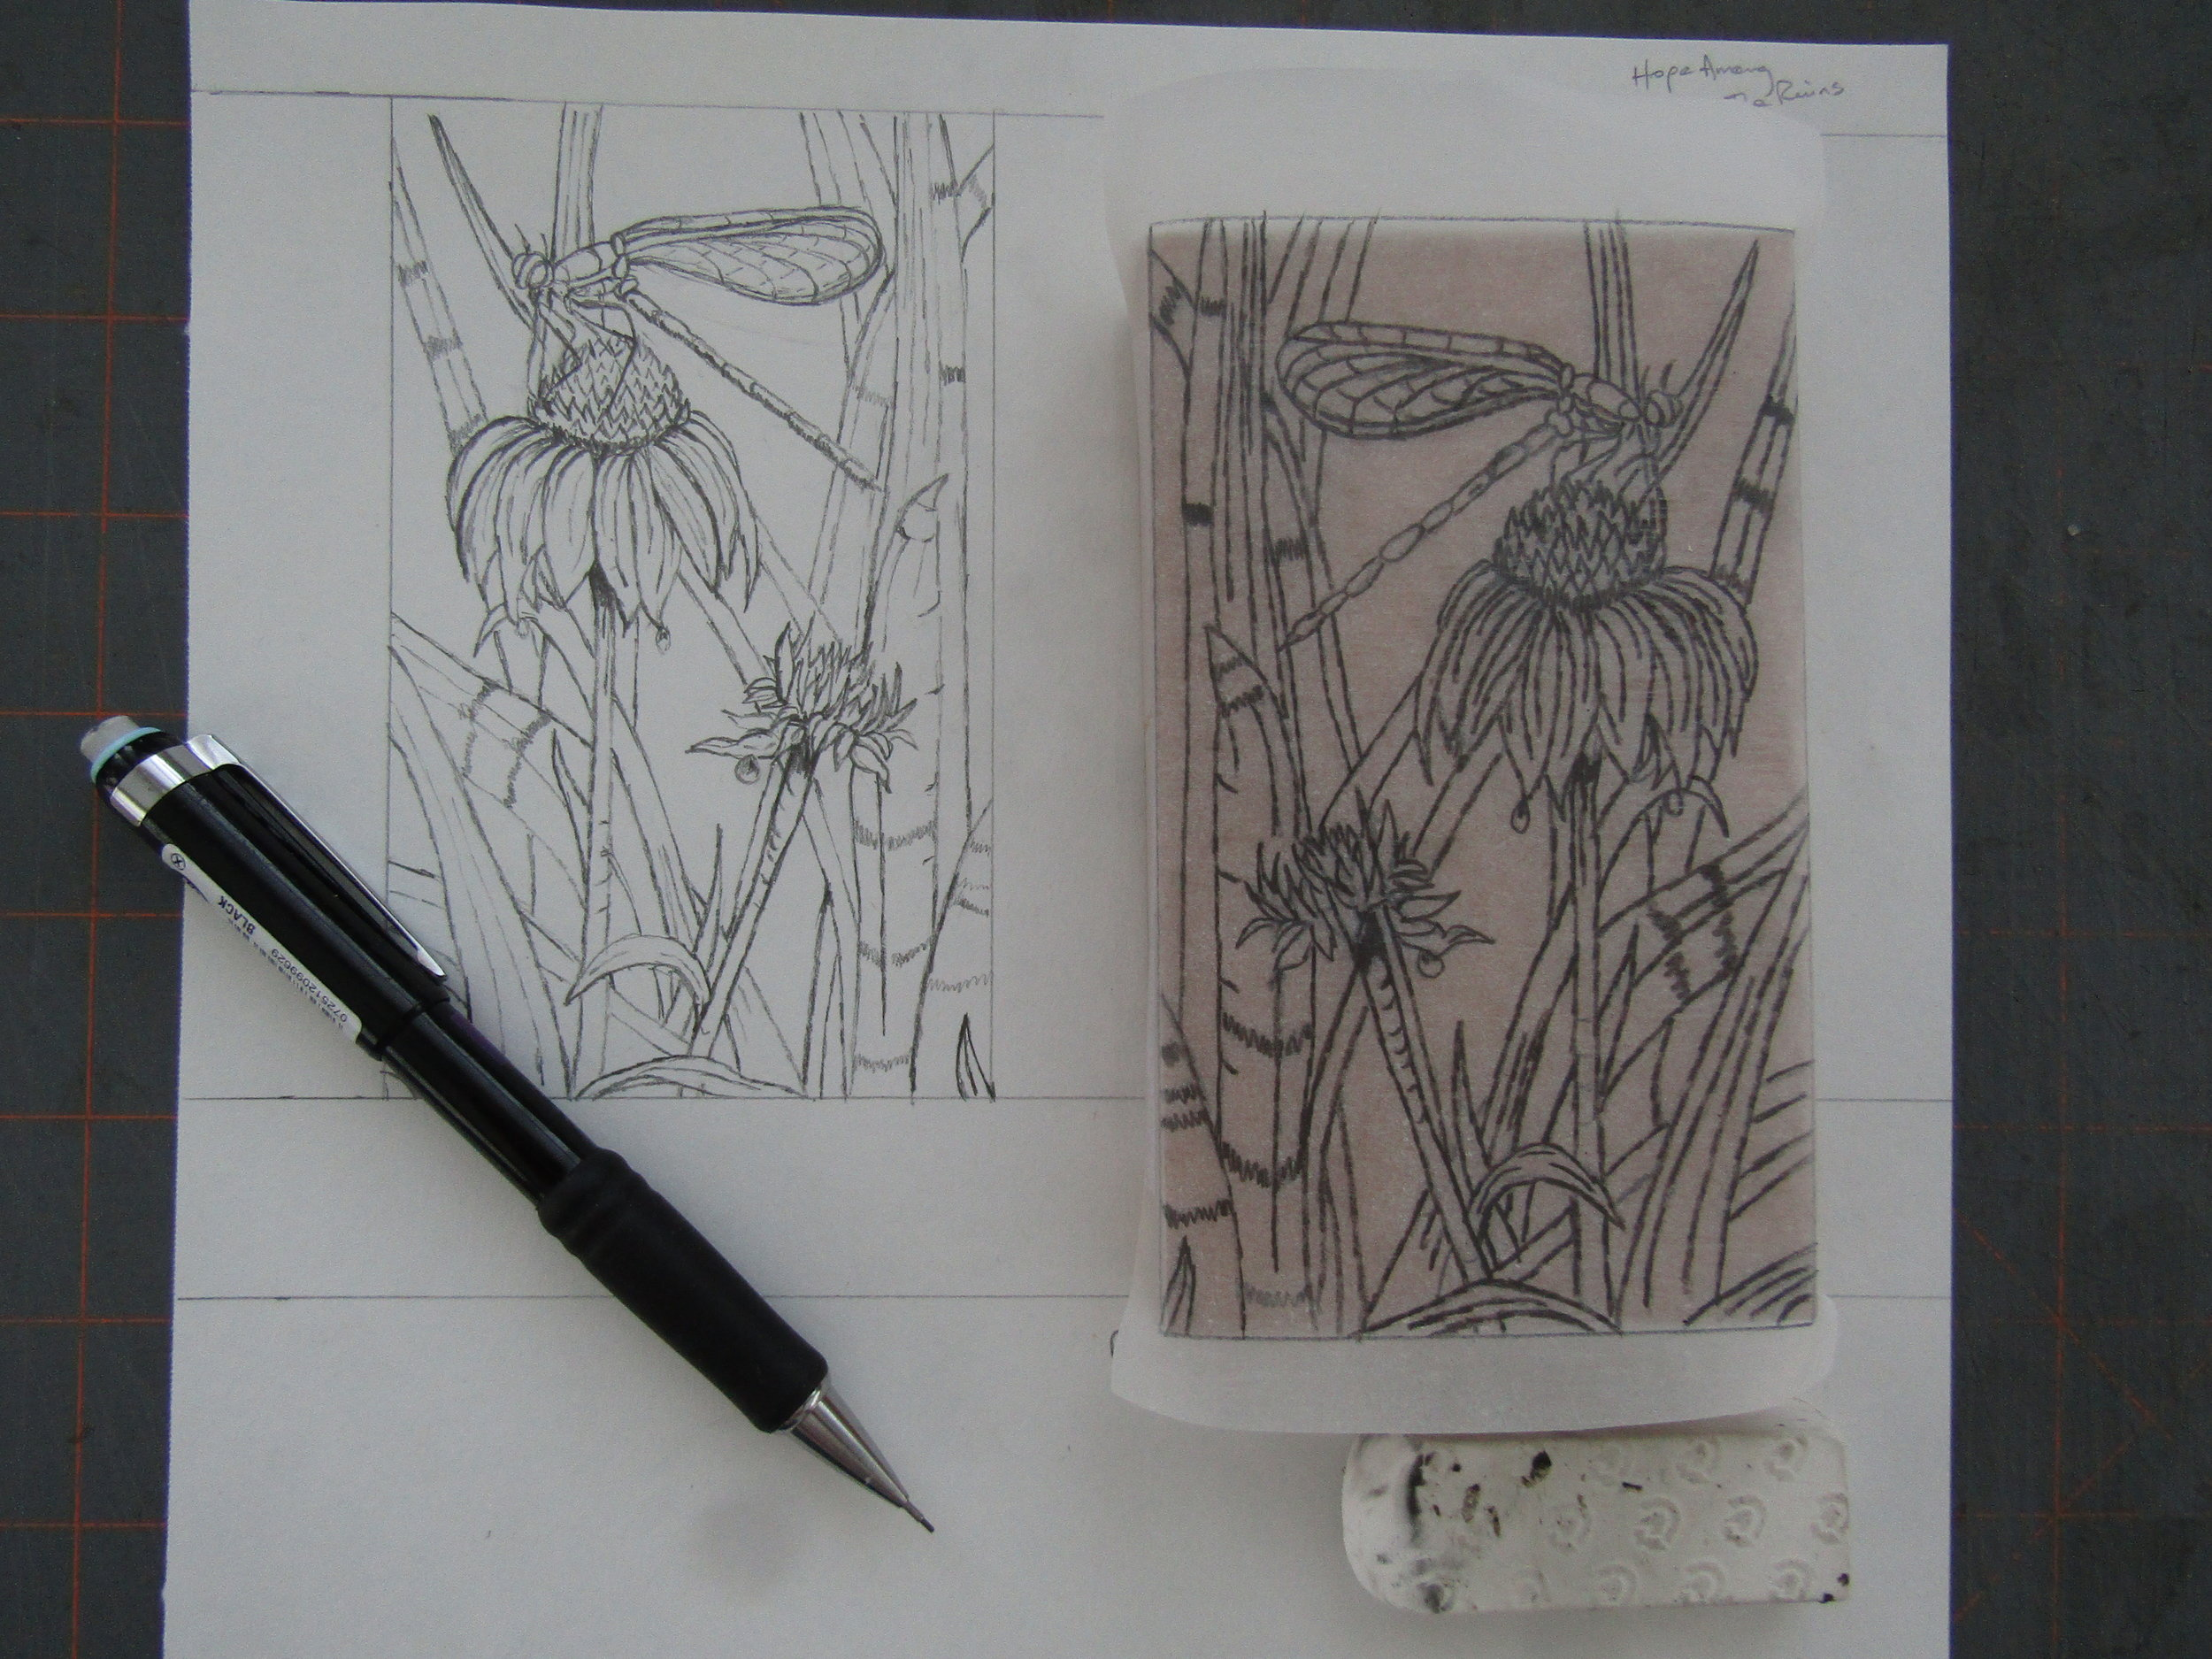 Transferring the drawing to a linoleum block. Photographs I took of my gardens were the sources for the drawings.